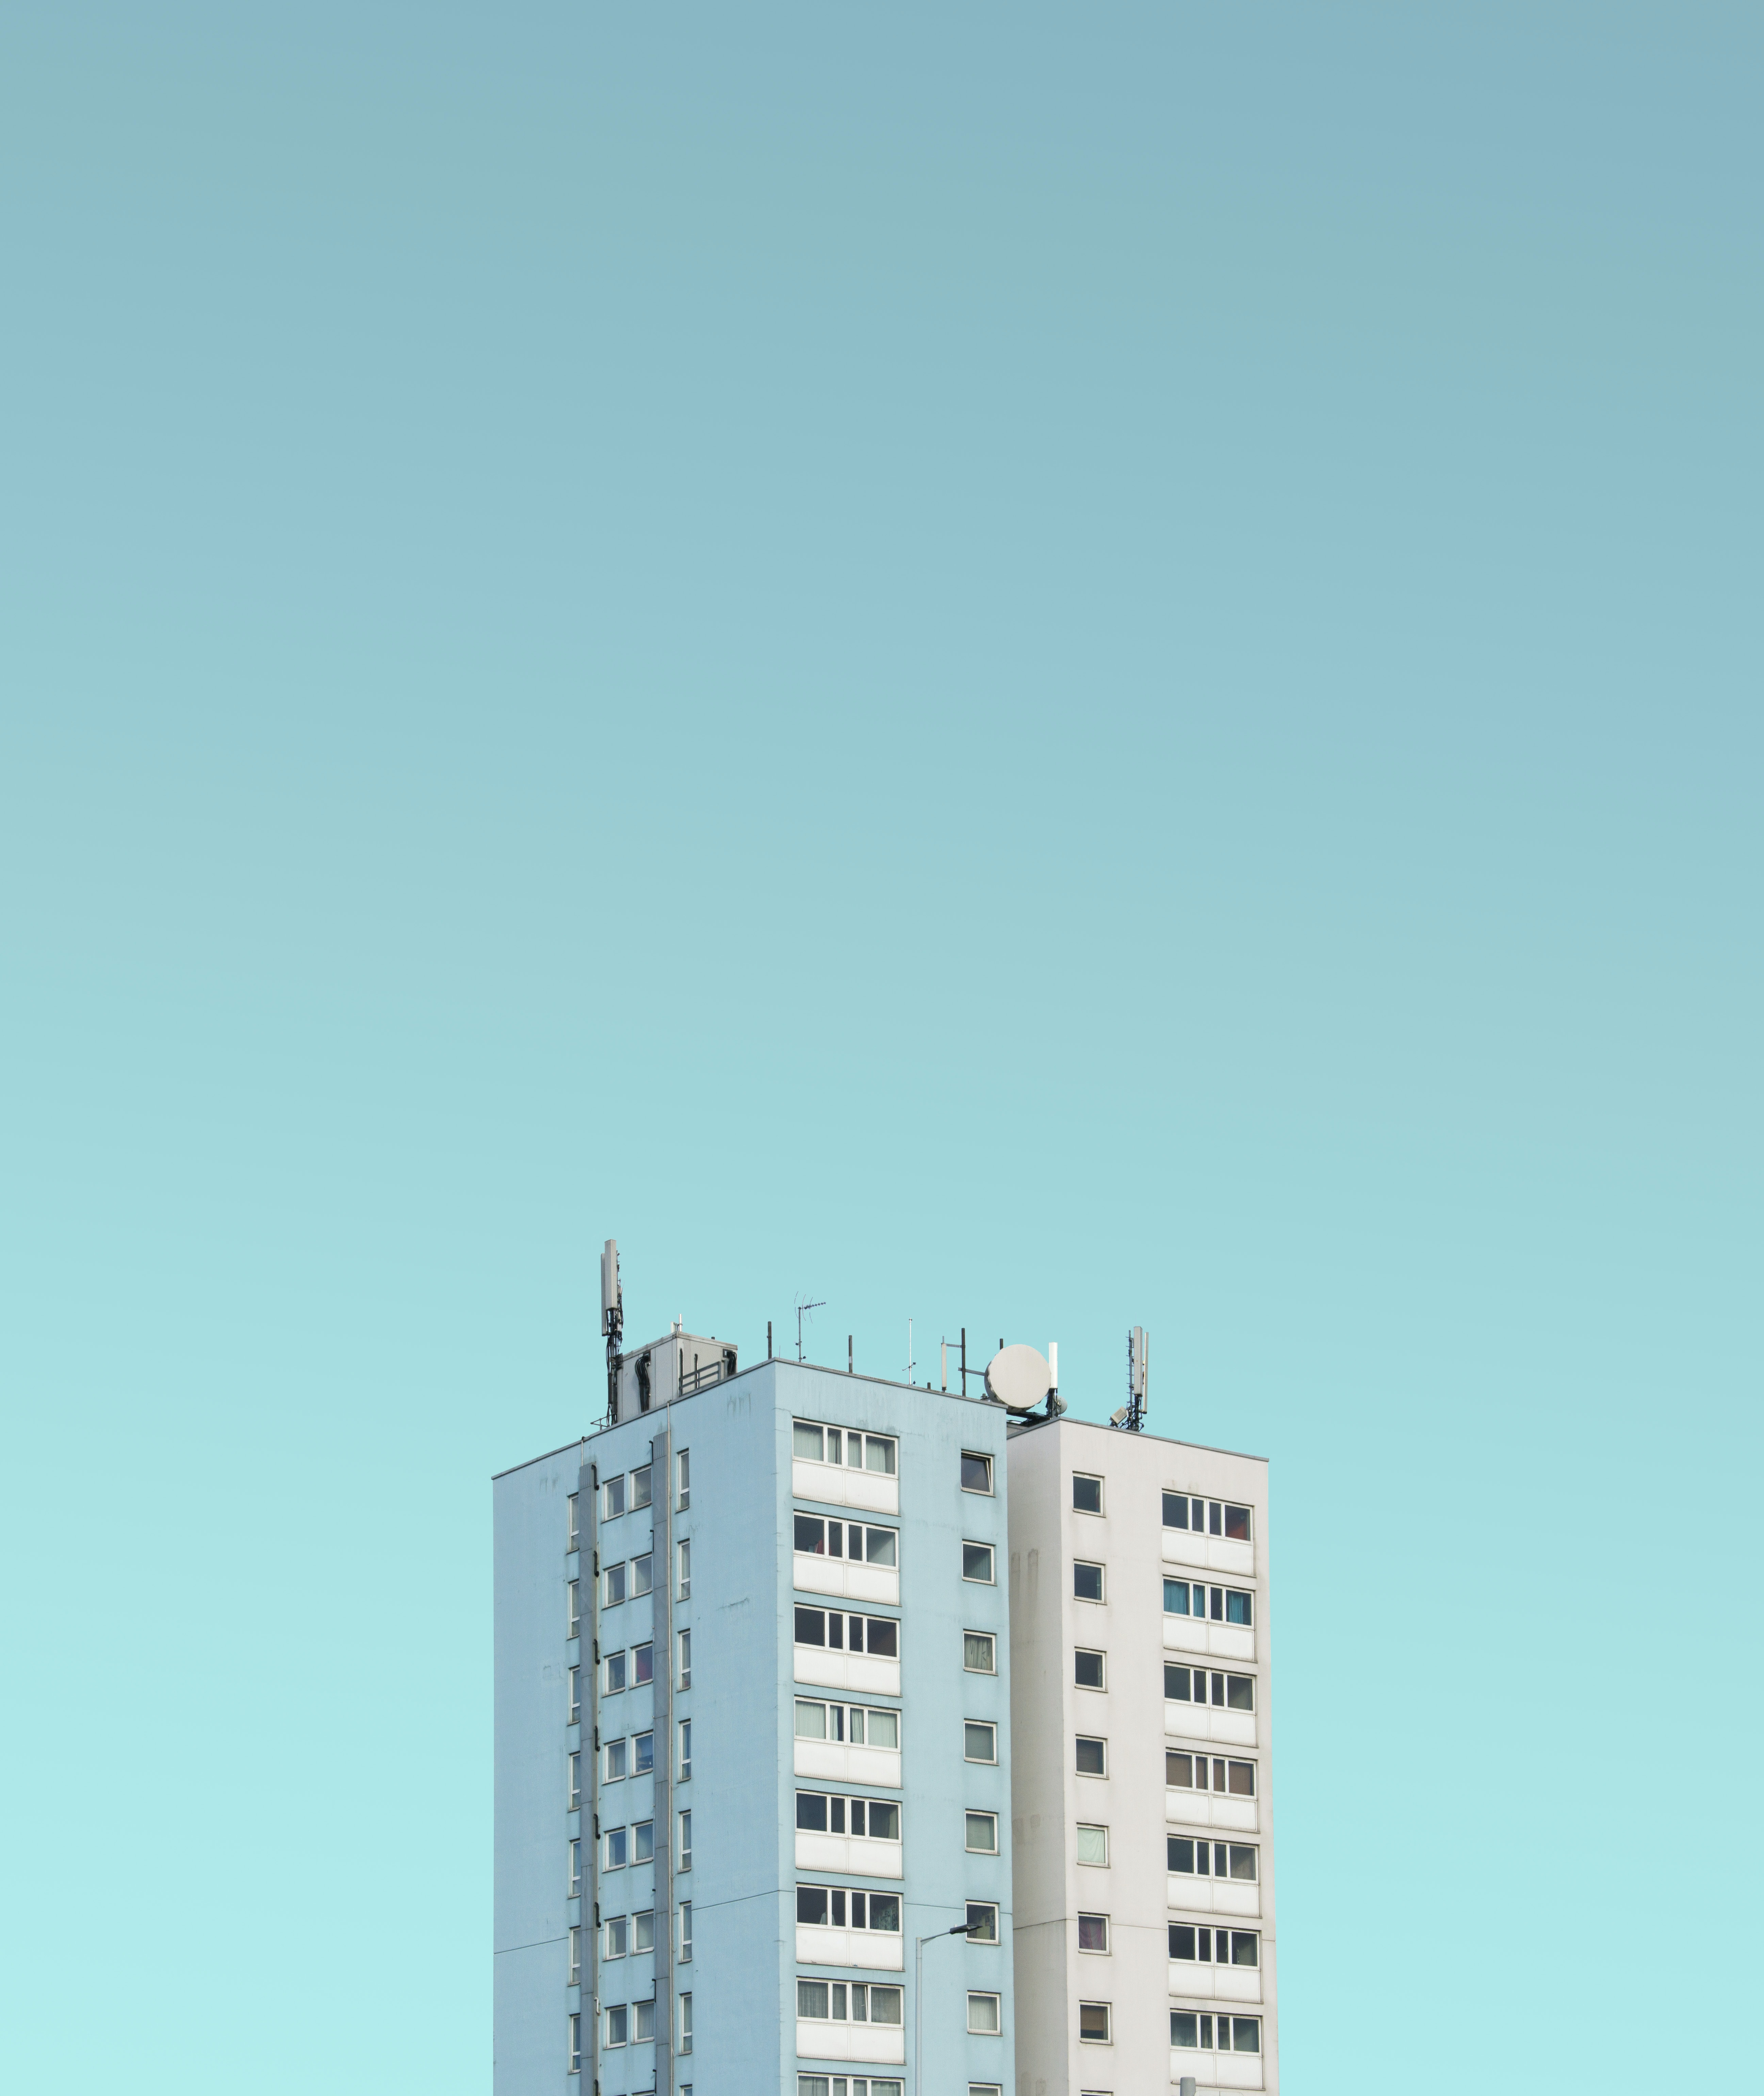 white painted high-rise building under clear sky